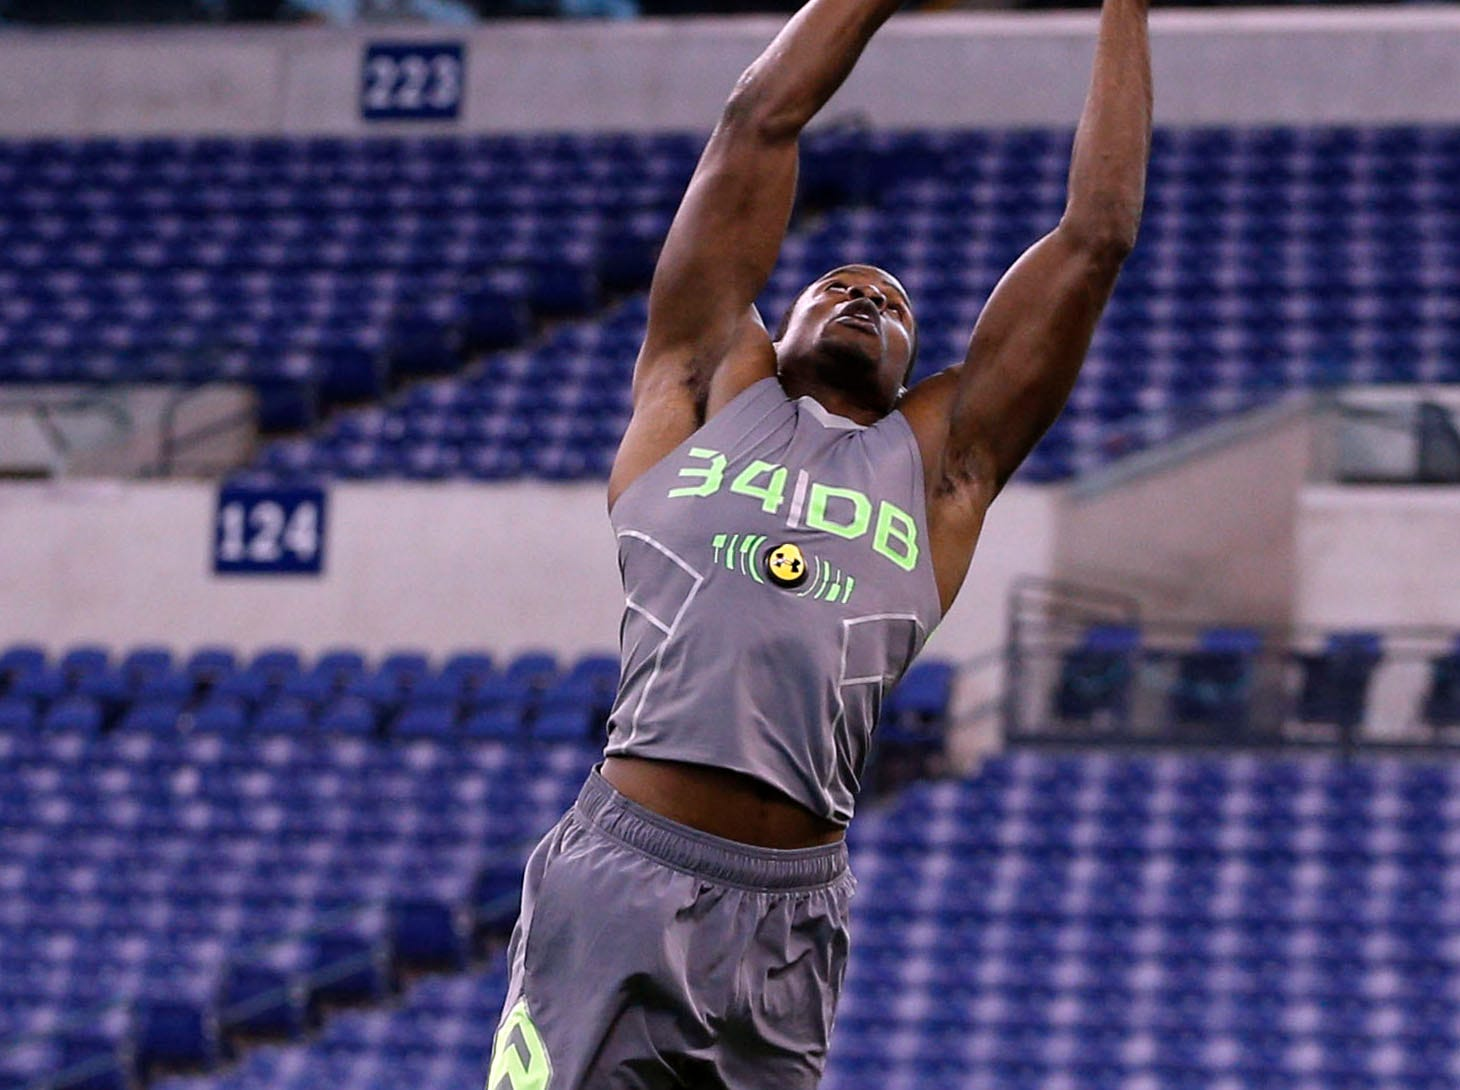 Feb 25, 2014; Indianapolis, IN, USA; Florida State Seminoles defensive back Lamarcus Joyner catches a pass during the 2014 NFL Combine at Lucas Oil Stadium. Mandatory Credit: Brian Spurlock-USA TODAY Sports